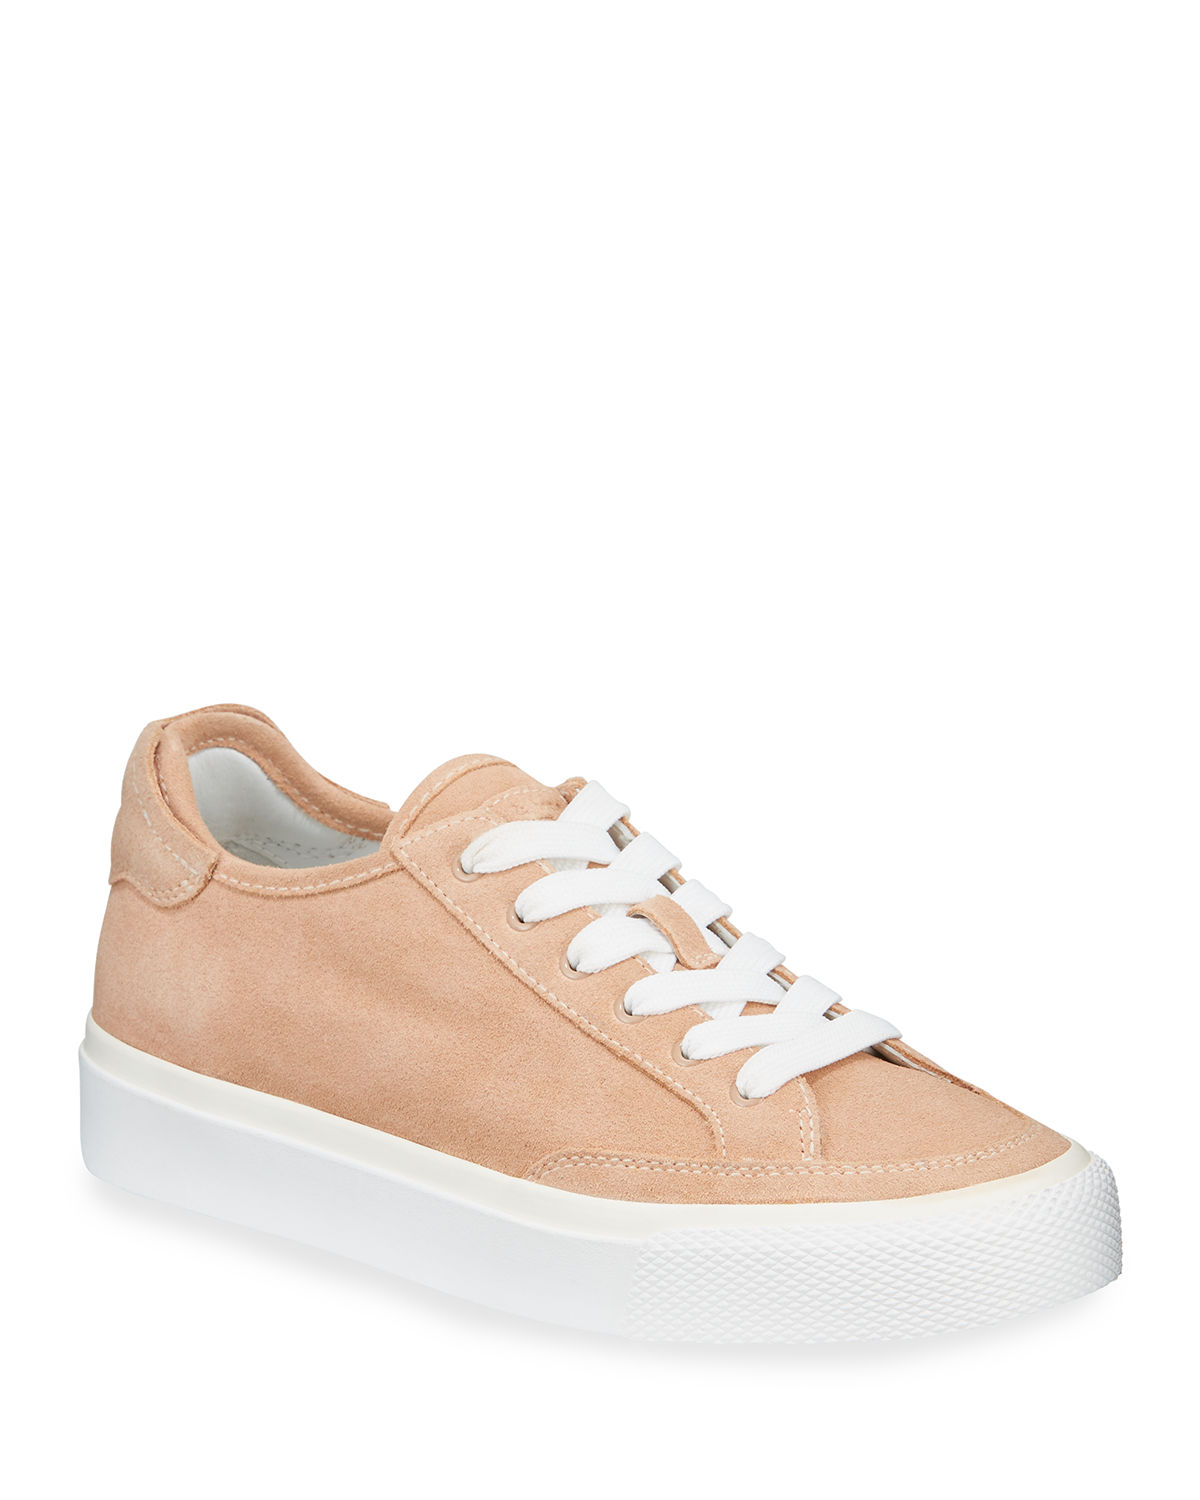 RB Army Suede Low-Top Sneakers